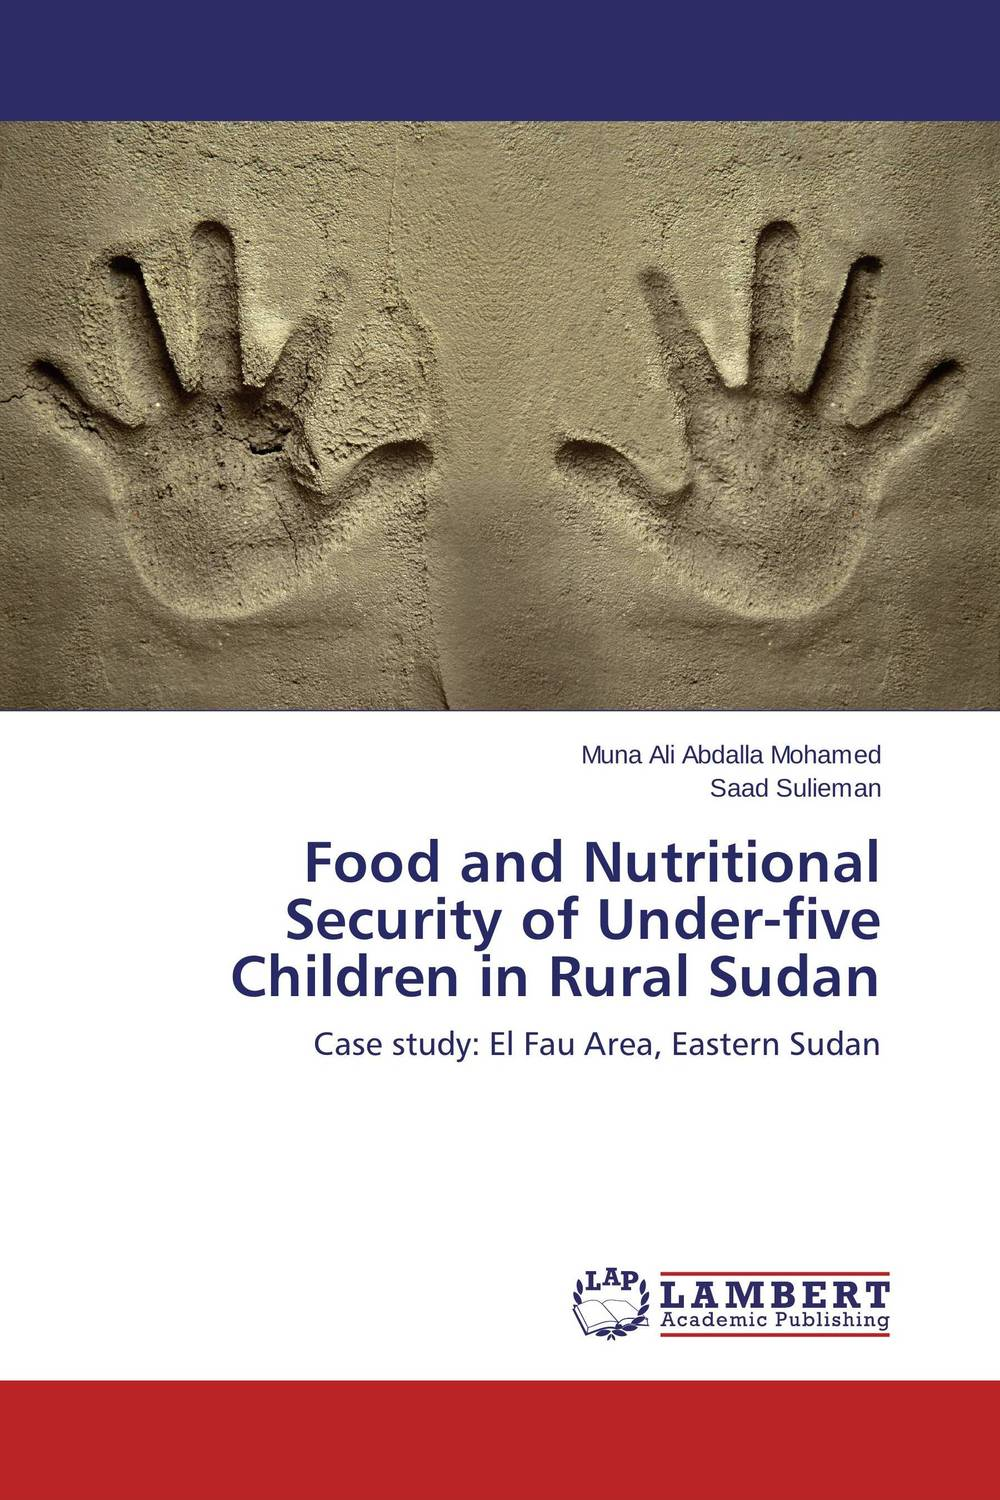 Food and Nutritional Security of Under-five Children in Rural Sudan